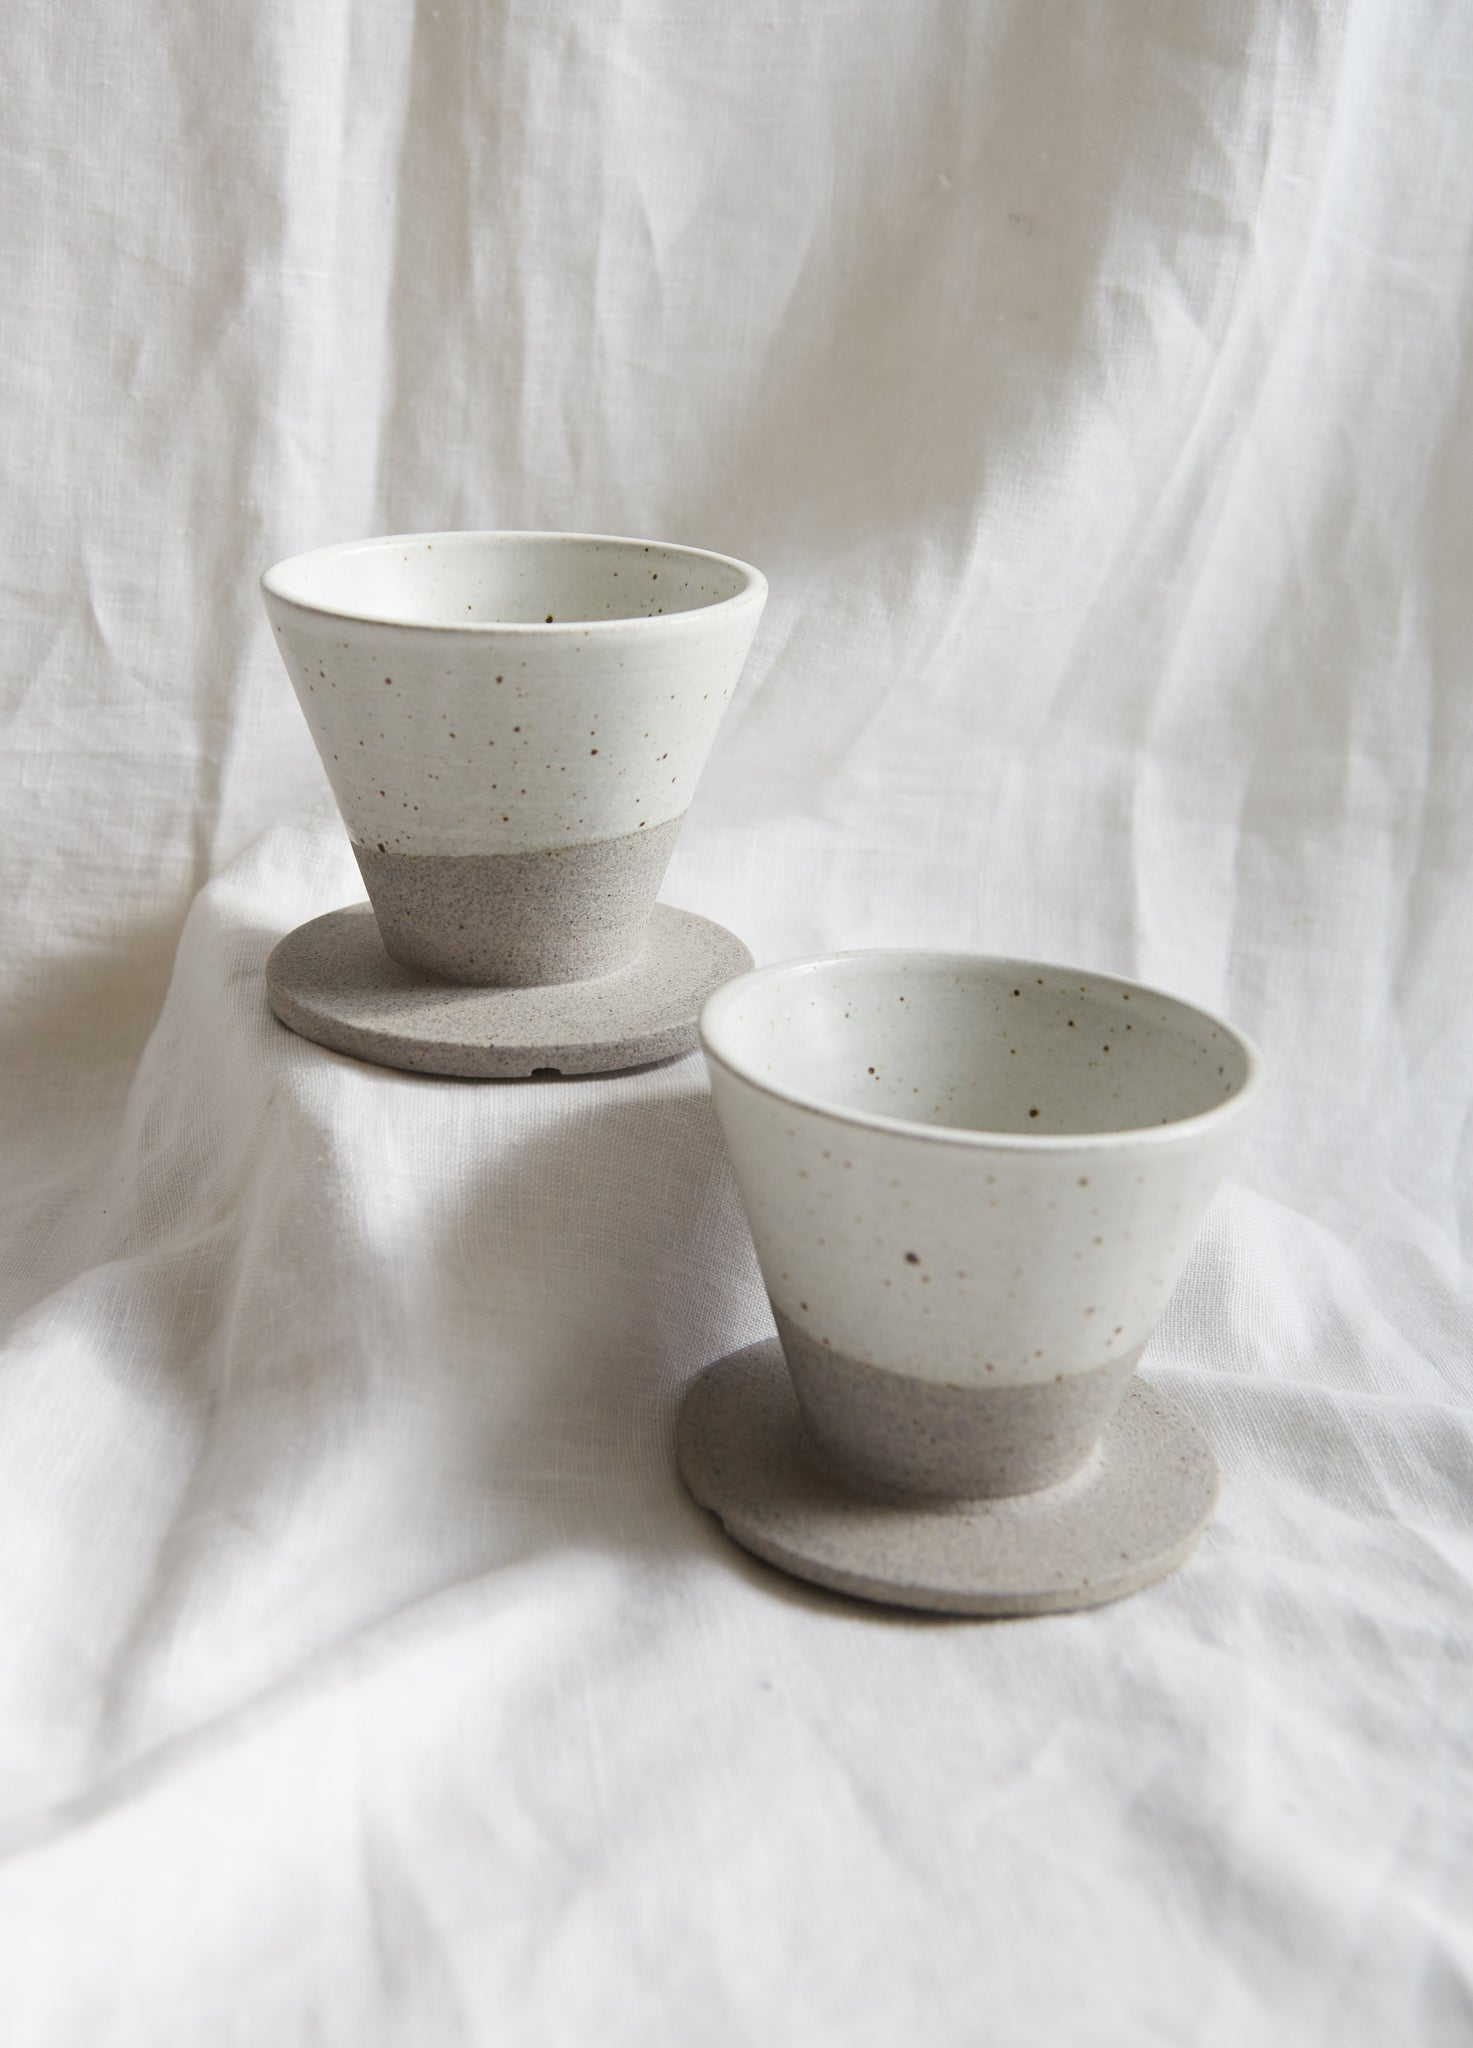 Humble Ceramics Tenshi Coffee Dripper